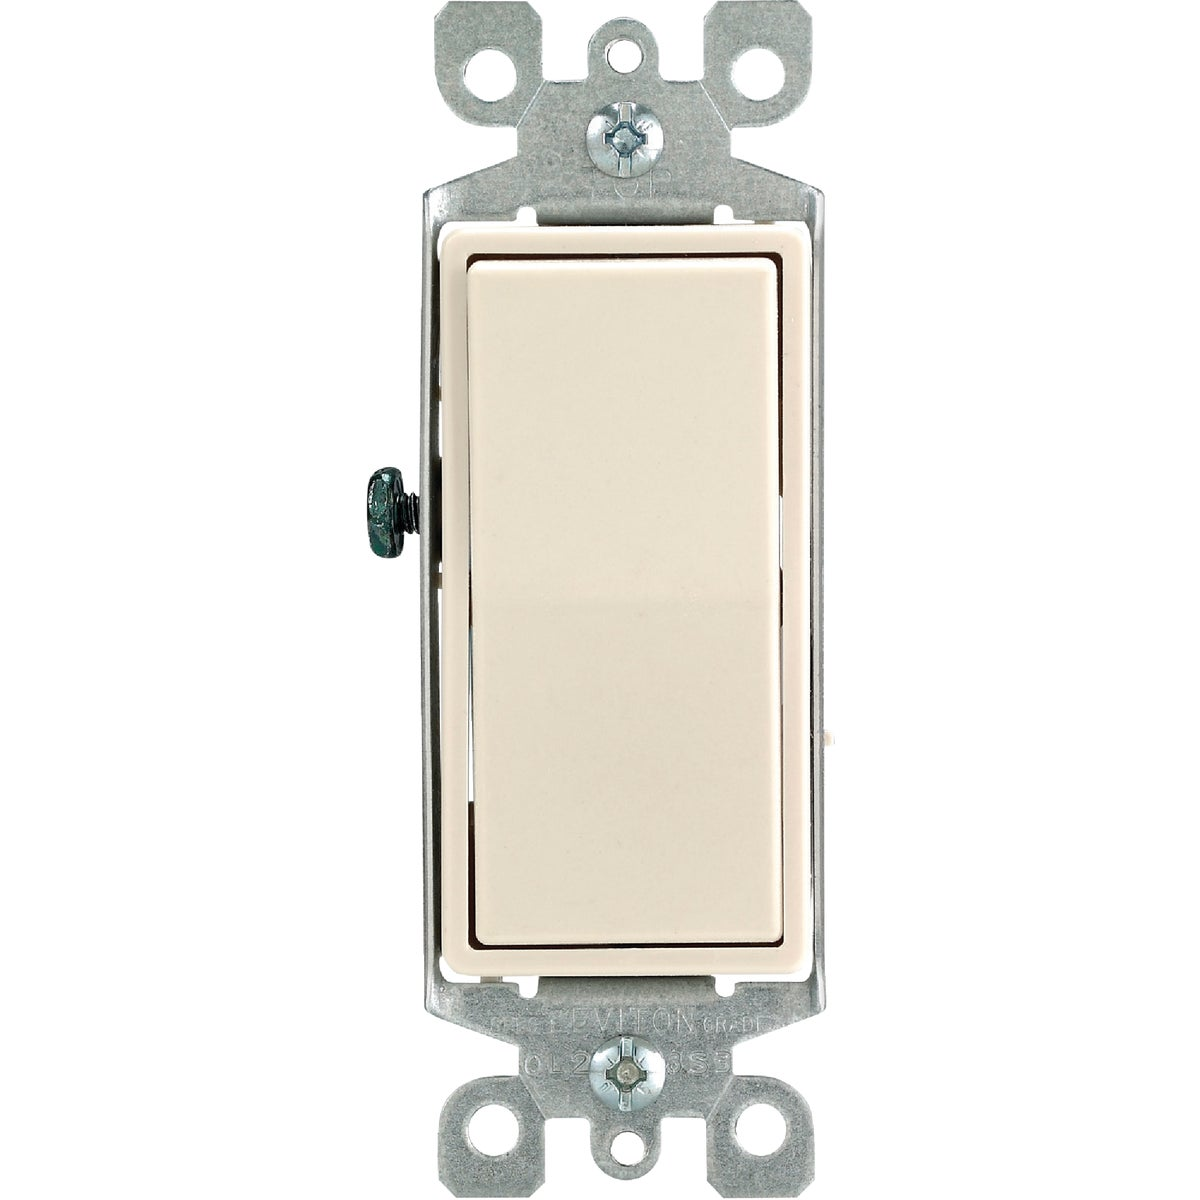 LT ALM 10PK DECOR SWITCH - M36-5601-2TM by Leviton Mfg Co